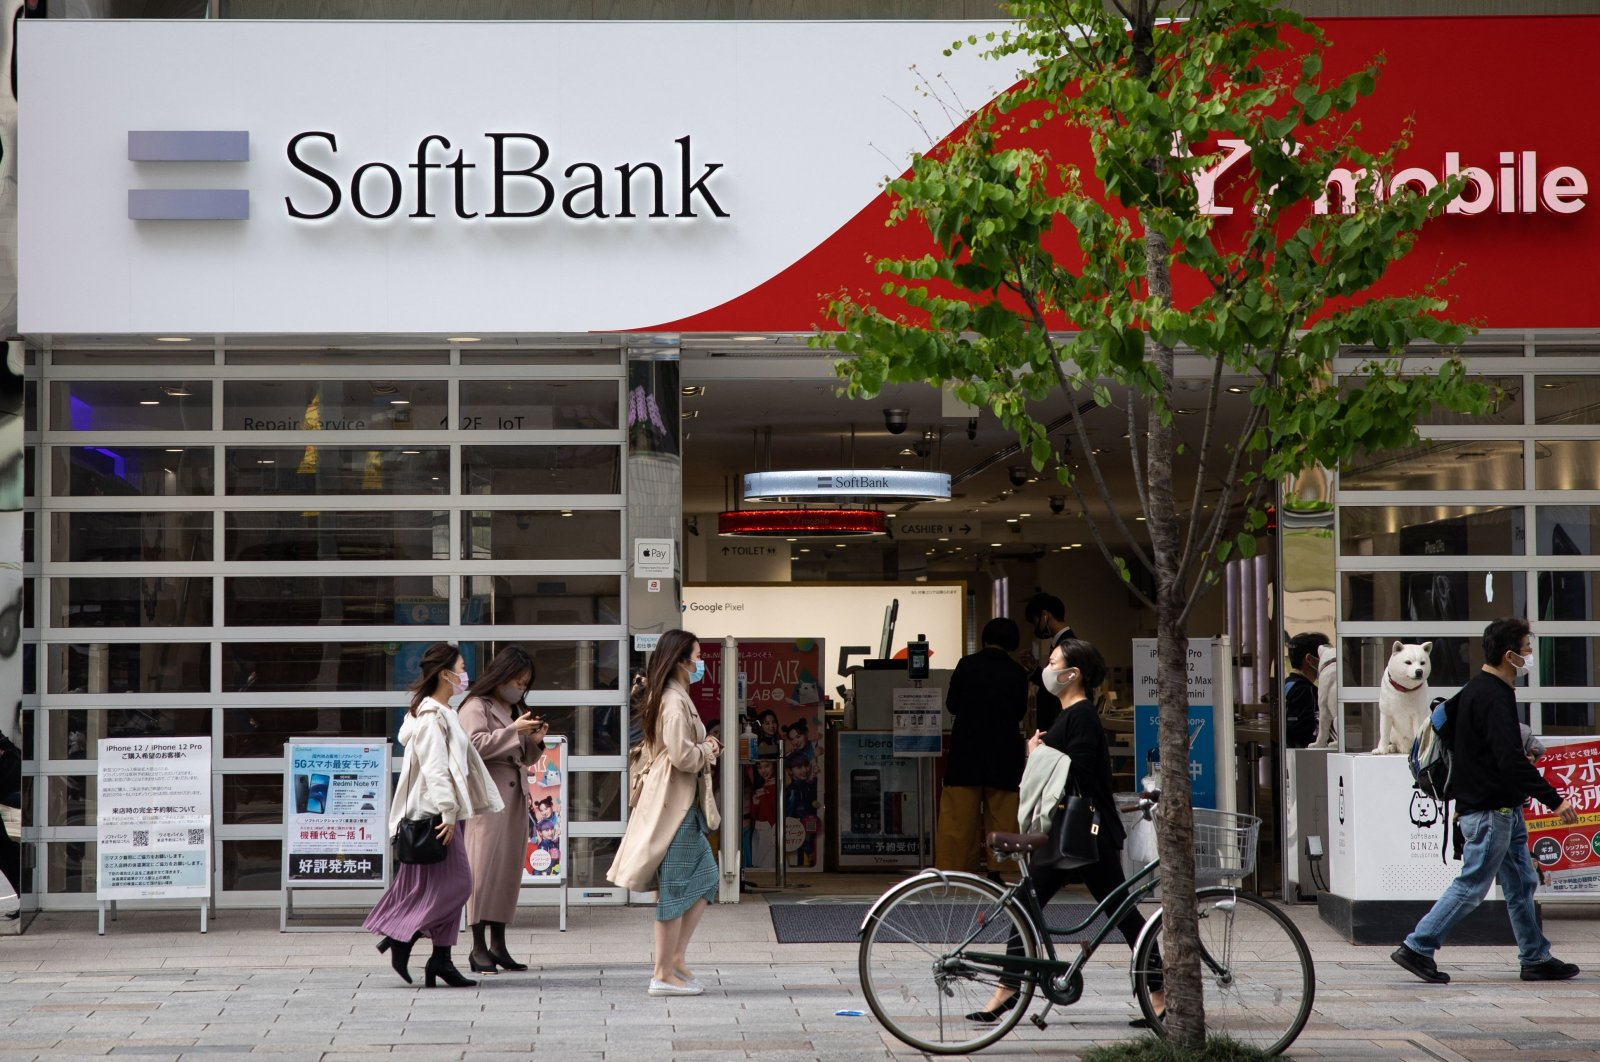 Pedestrians walk past a SoftBank mobile shop in the Ginza shopping district in Tokyo, Japan, April 6, 2021. (AFP Photo)